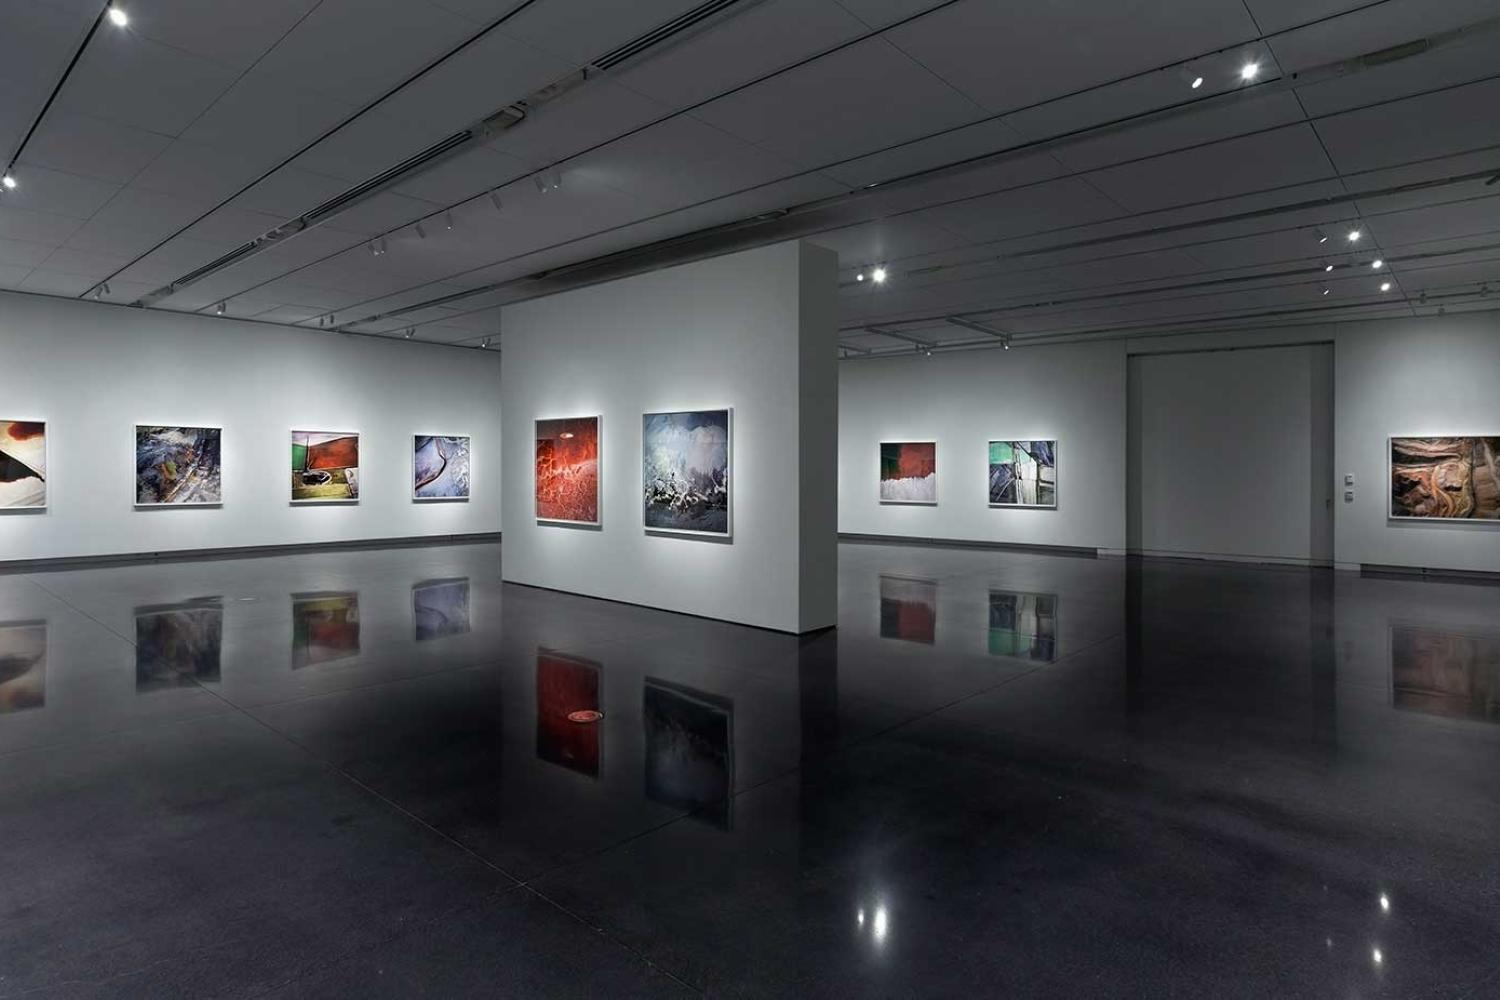 photo of the gallery with large colorful photographs on the walls